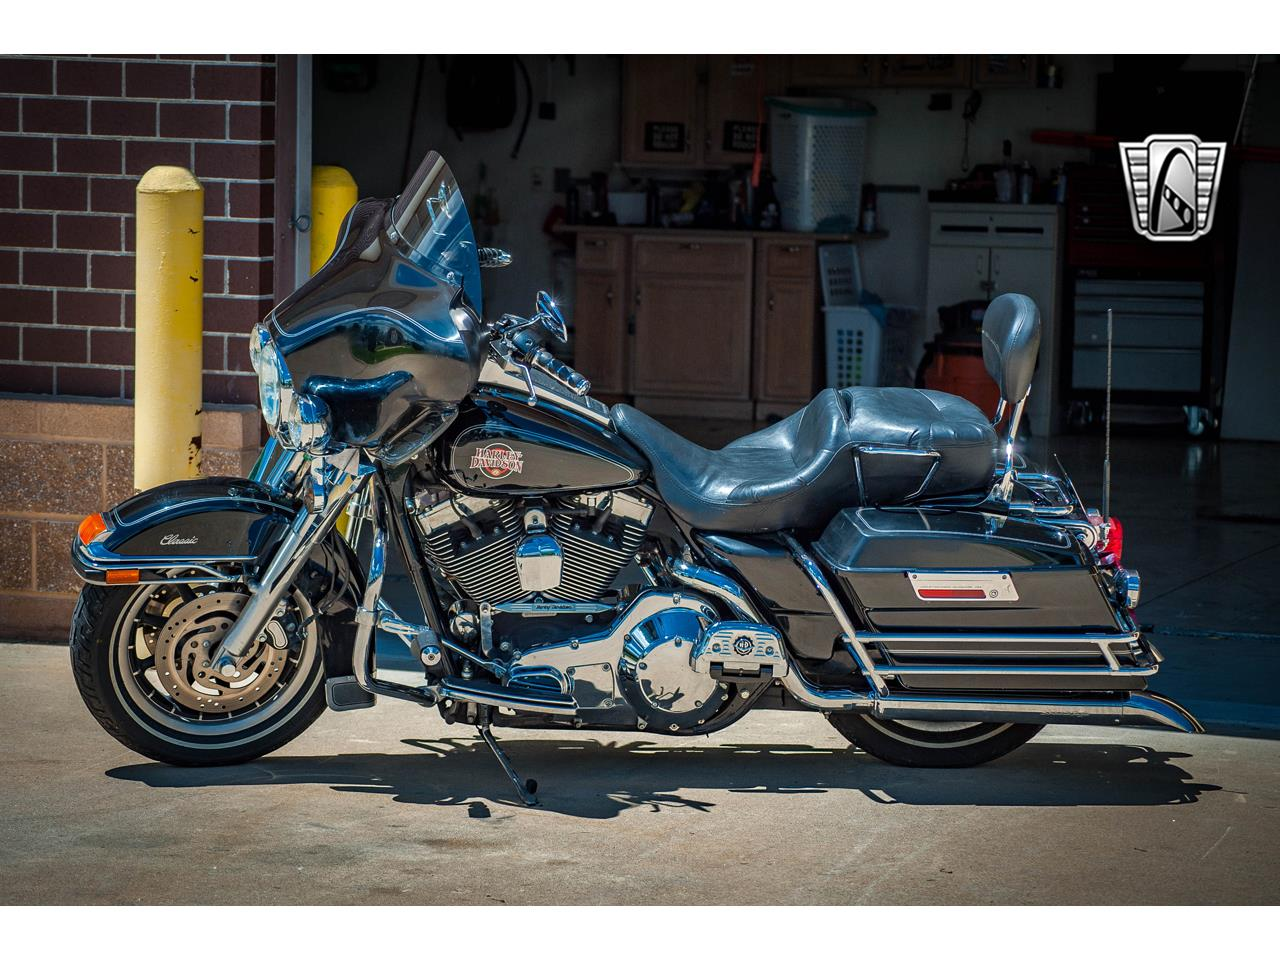 2004 Harley-Davidson Motorcycle for sale in O'Fallon, IL – photo 3